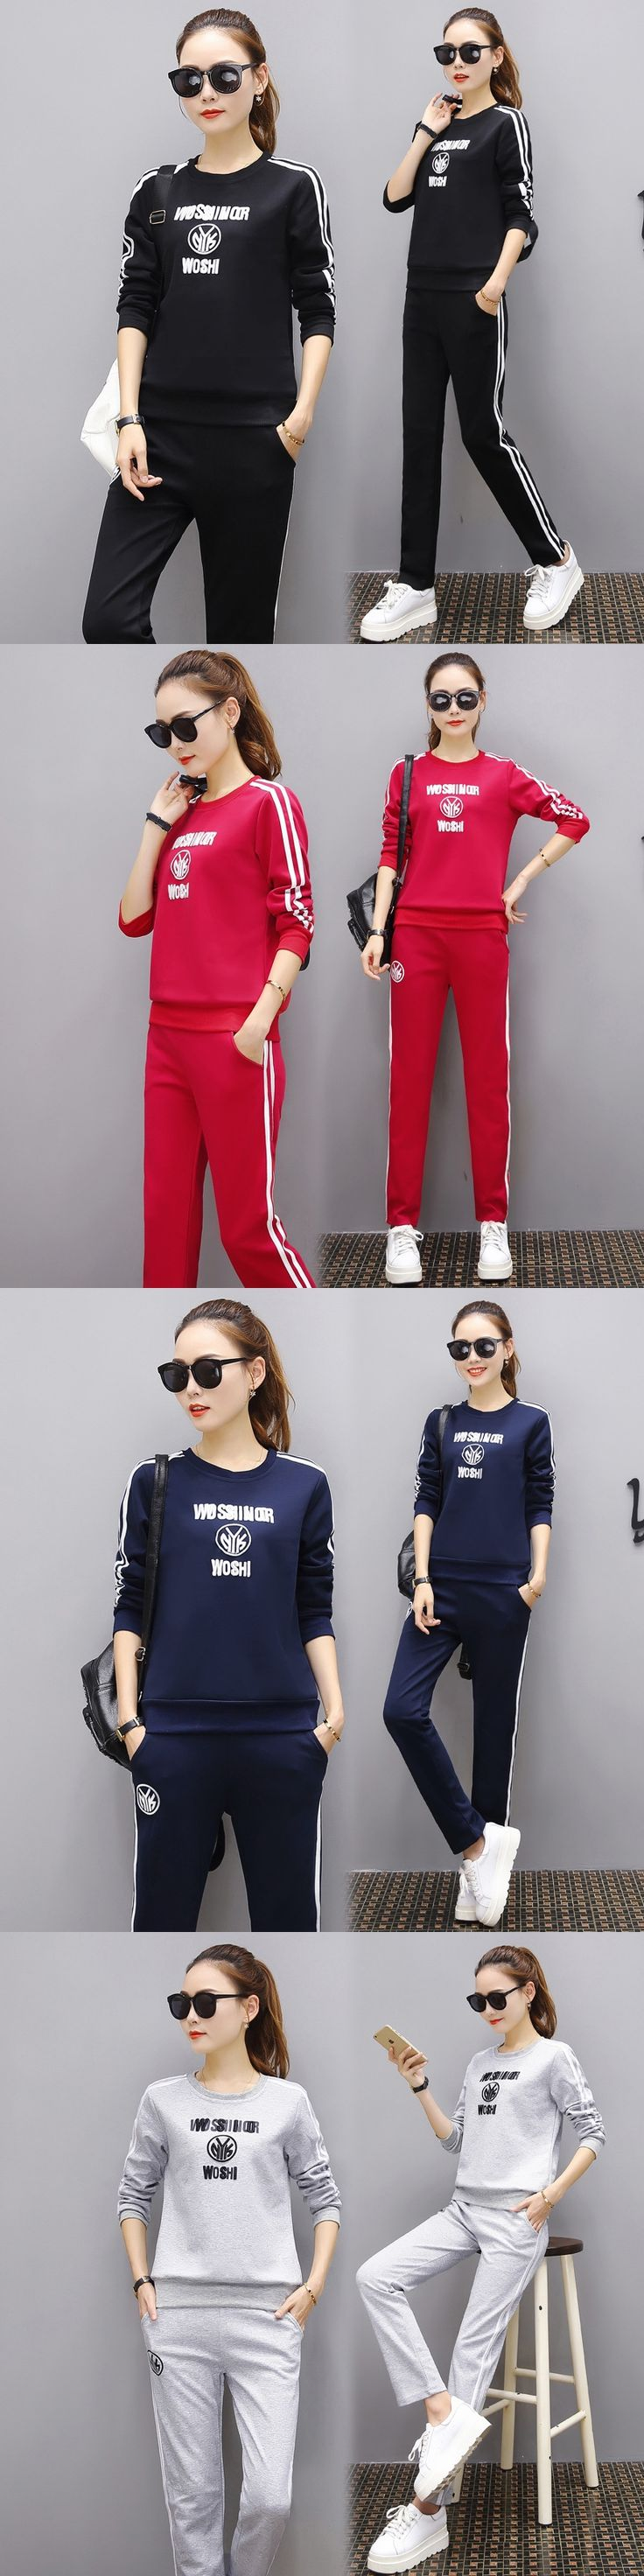 Ladies sportswear fall winter fashion letters stripes embroidery ladies sportswear round neck casual two-piece ladies suits